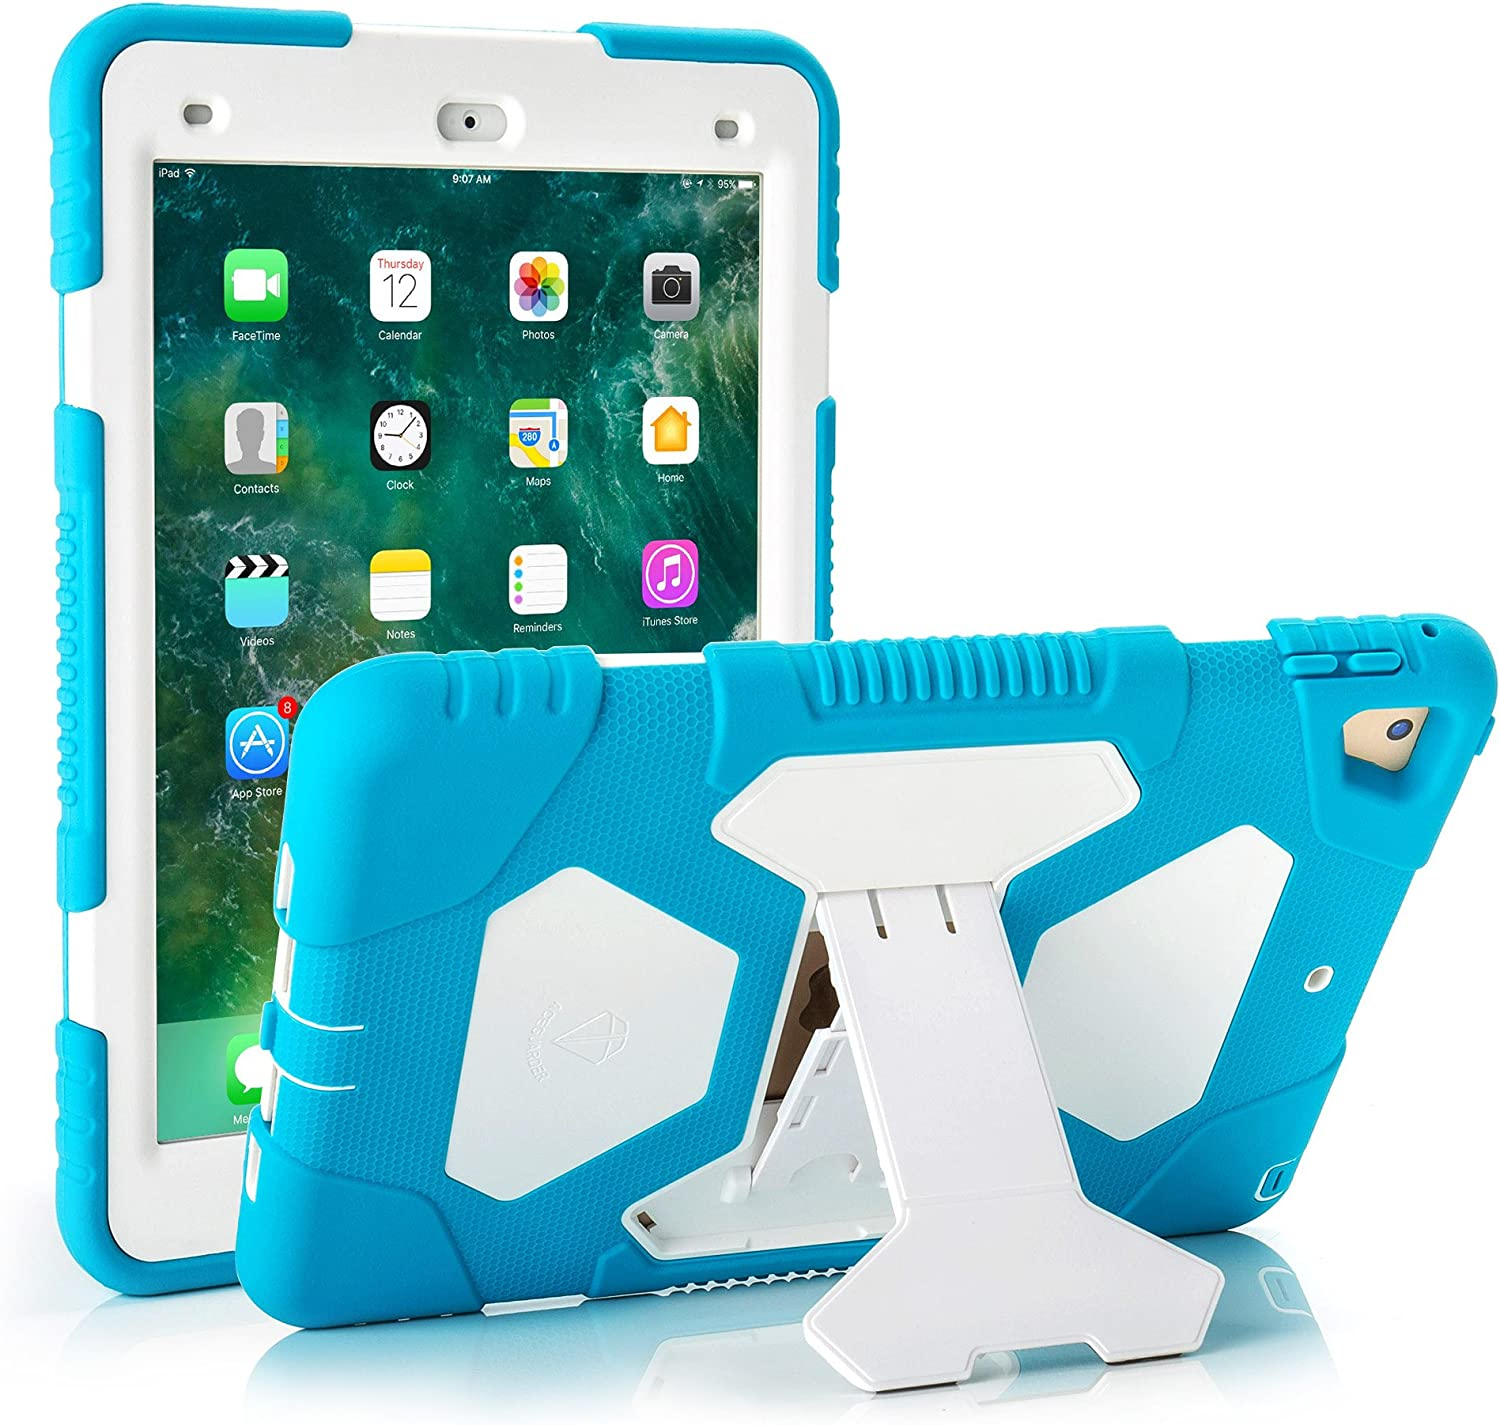 ACEGUARDER iPad 2017/2018 iPad 9.7 inch Case, Shockproof Impact Resistant Protective Case Cover Full Body Rugged for Kids with Kickstand for ipad 5 th/ipad 6 th Generation, Light Blue/White